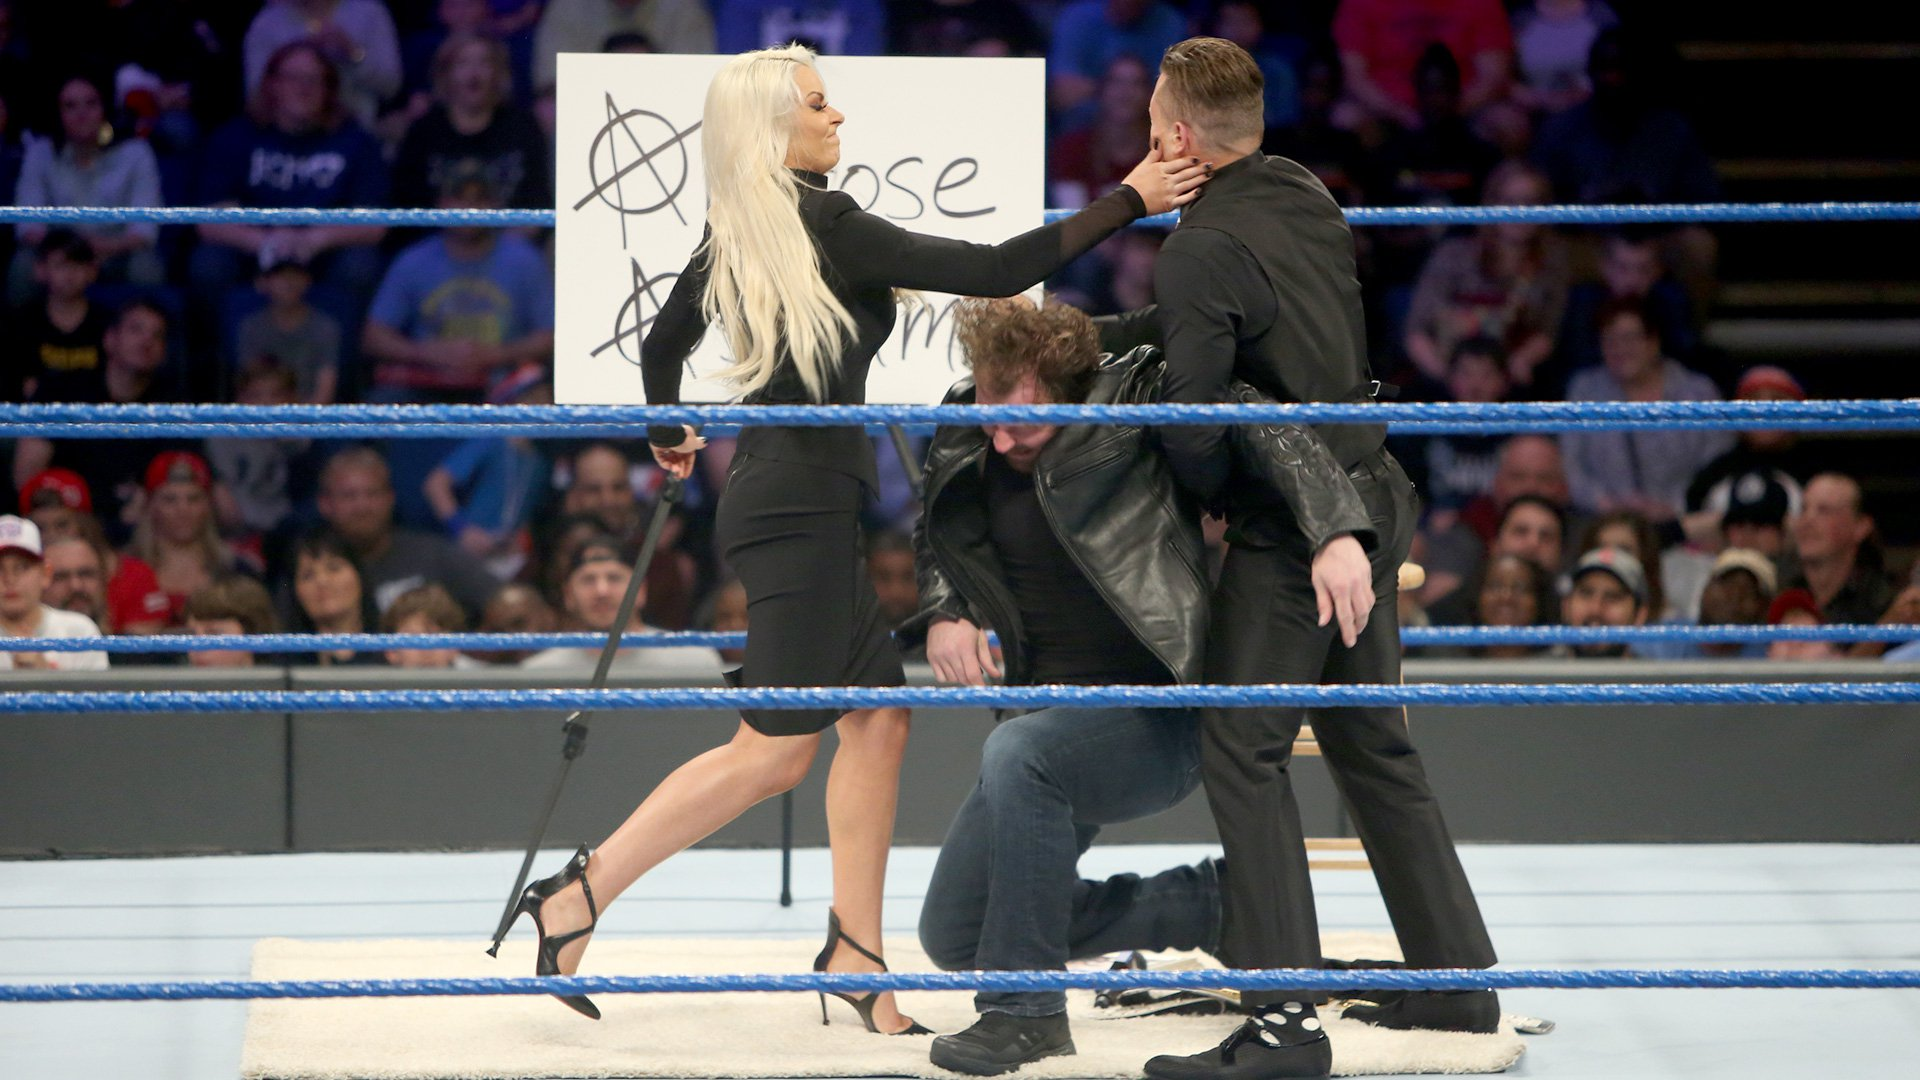 He holds up Ambrose for Maryse to hit him, but Ambrose ducks and Maryse accidentally slaps her husband!